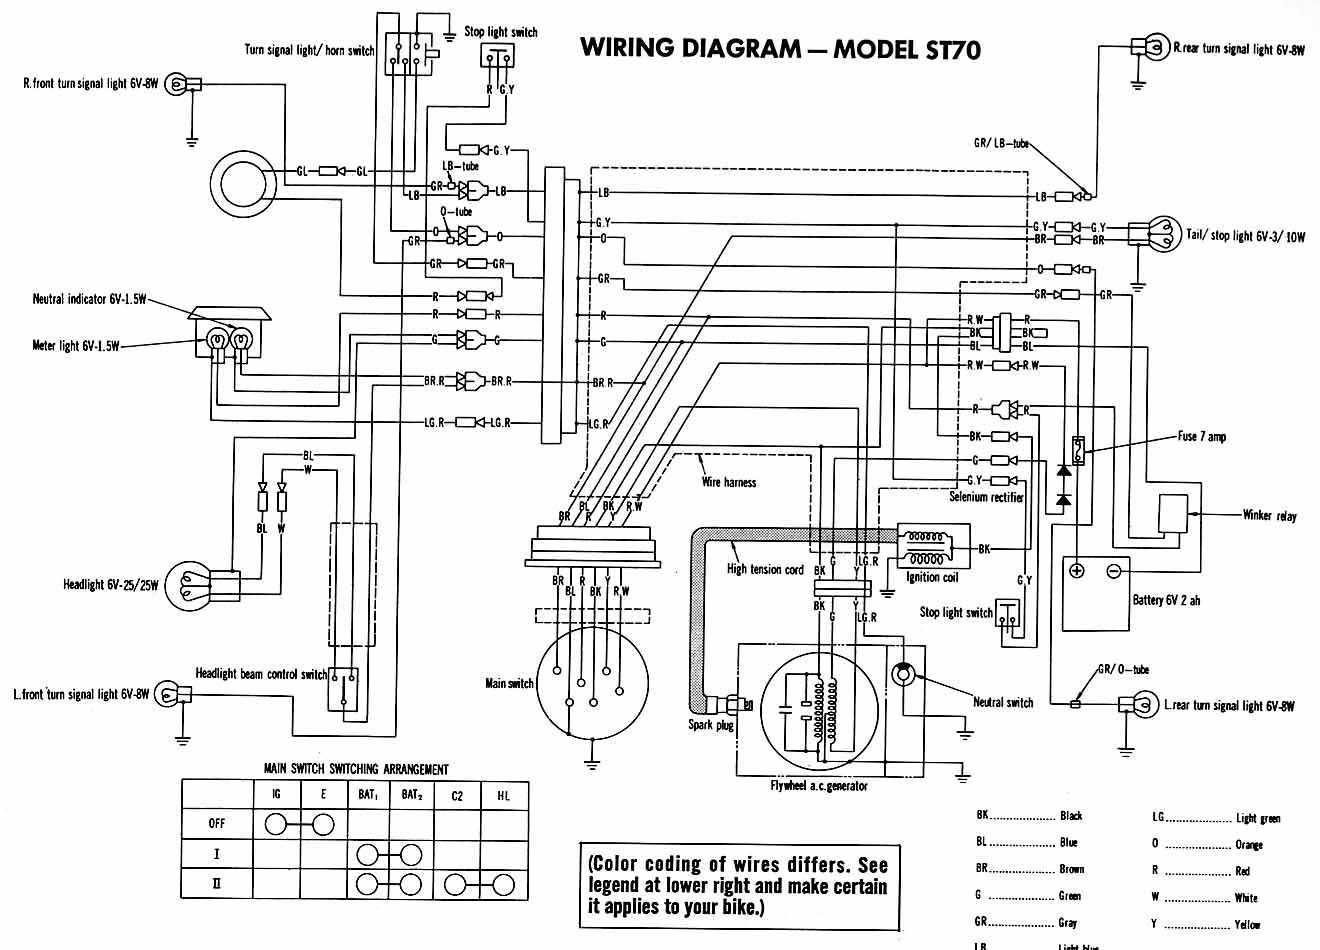 honda st70 motorcycle wiring diagram | all about wiring ... june 2012 all about wiring diagrams 2012 hyundai accent wiring diagrams